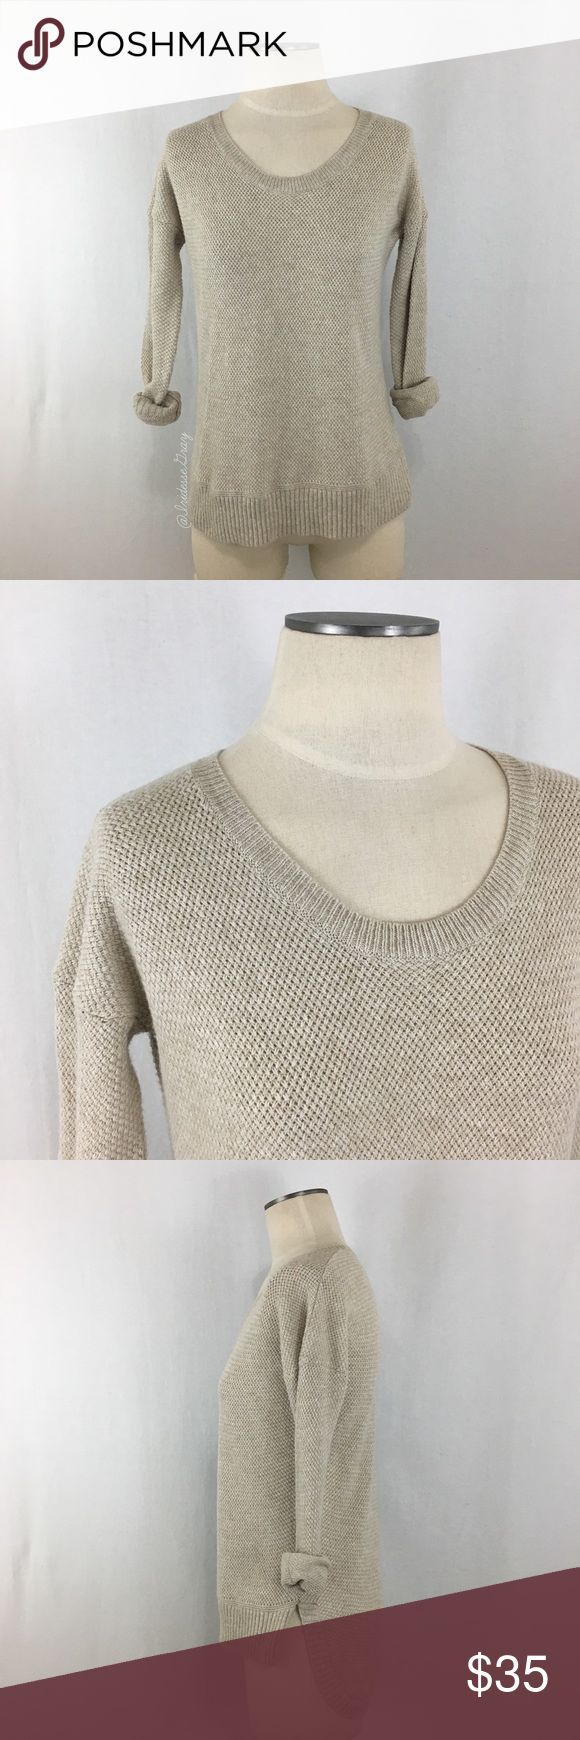 """Madewell- Oatmeal Basketweave Hi-Low Sweater SZ XS Madewell- Oatmeal Basketweave Hi-Low Sweater Size XS. Made of 62% Cotton, 20% Viscose, and 18% Nylon. Long sleeved style. Hem is straight in the front, longer and curved in the back. Wrists and hem have a rib knit trim. Great preloved condition, there is a light perfume scent to it. Shoulder-bottom measures about 22.5"""" long in the front, 27"""" in the back. Armpit-armpit measures about 19"""" across laid flat. (G). Madewell Sweaters Crew & Scoop…"""